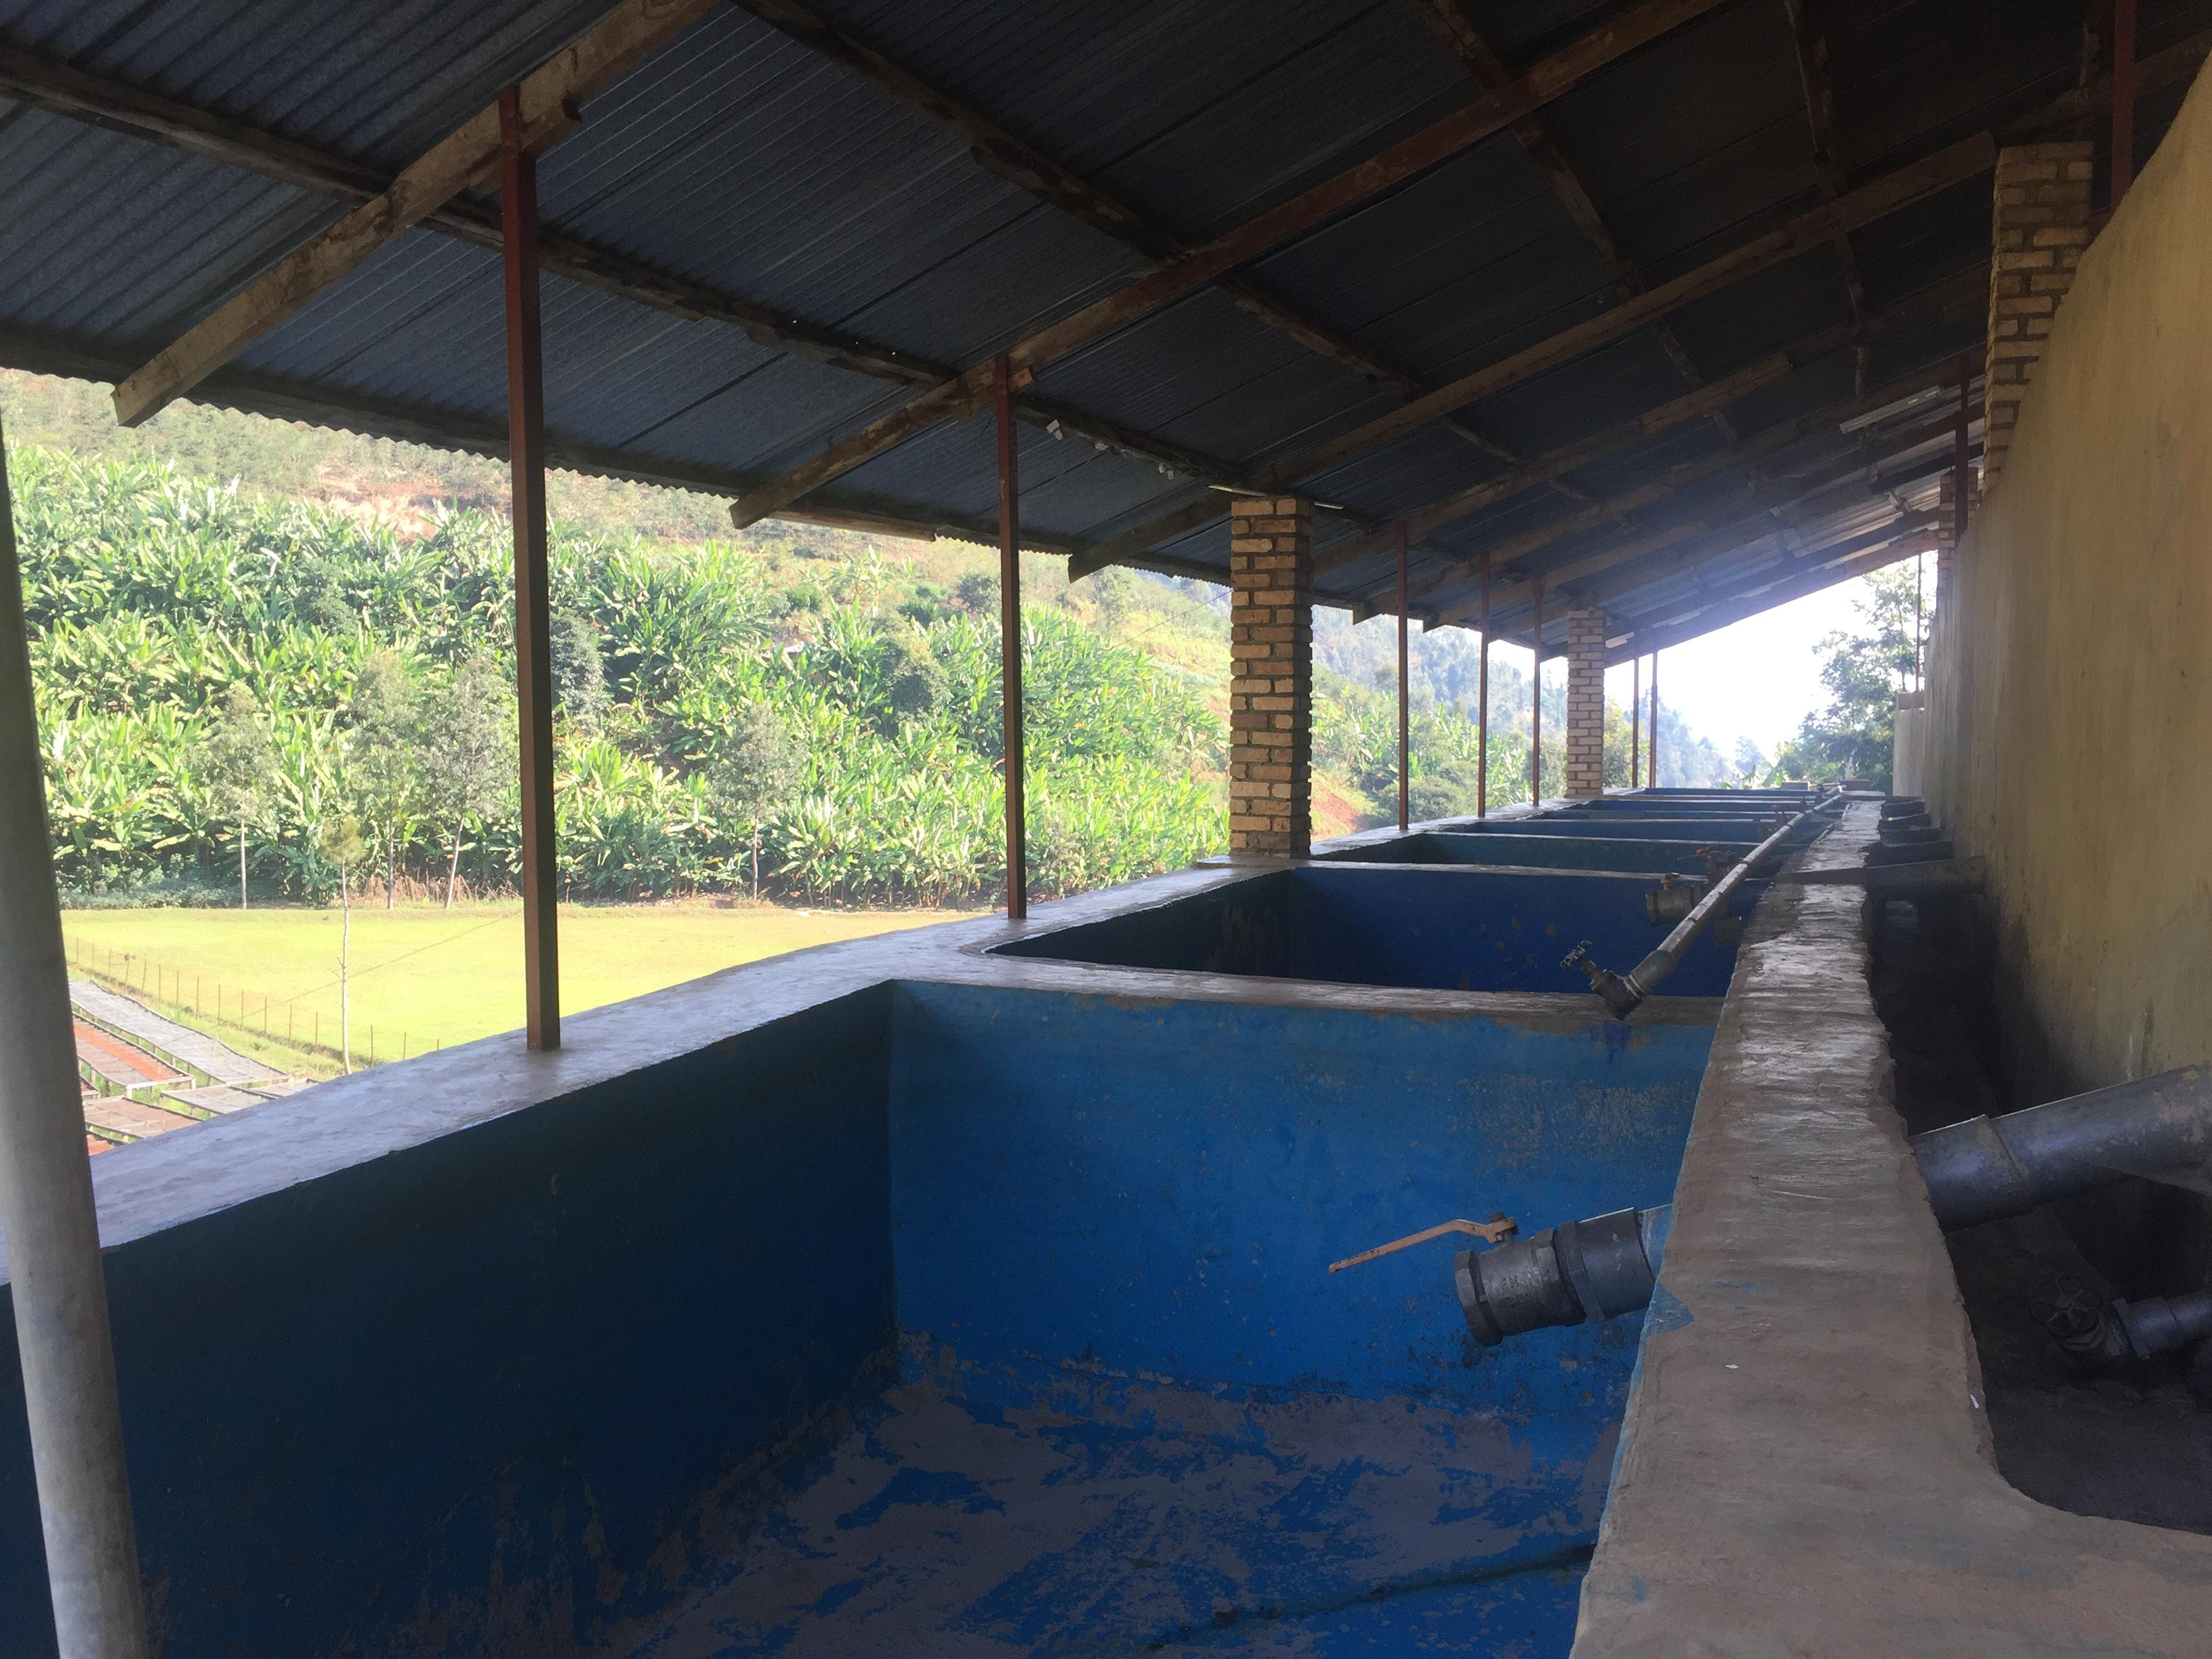 Then, each grades are separately dry fermented into those concrete tanks. Taps at the bottom are left open, leaving the parchment coffee fermenting without being under water